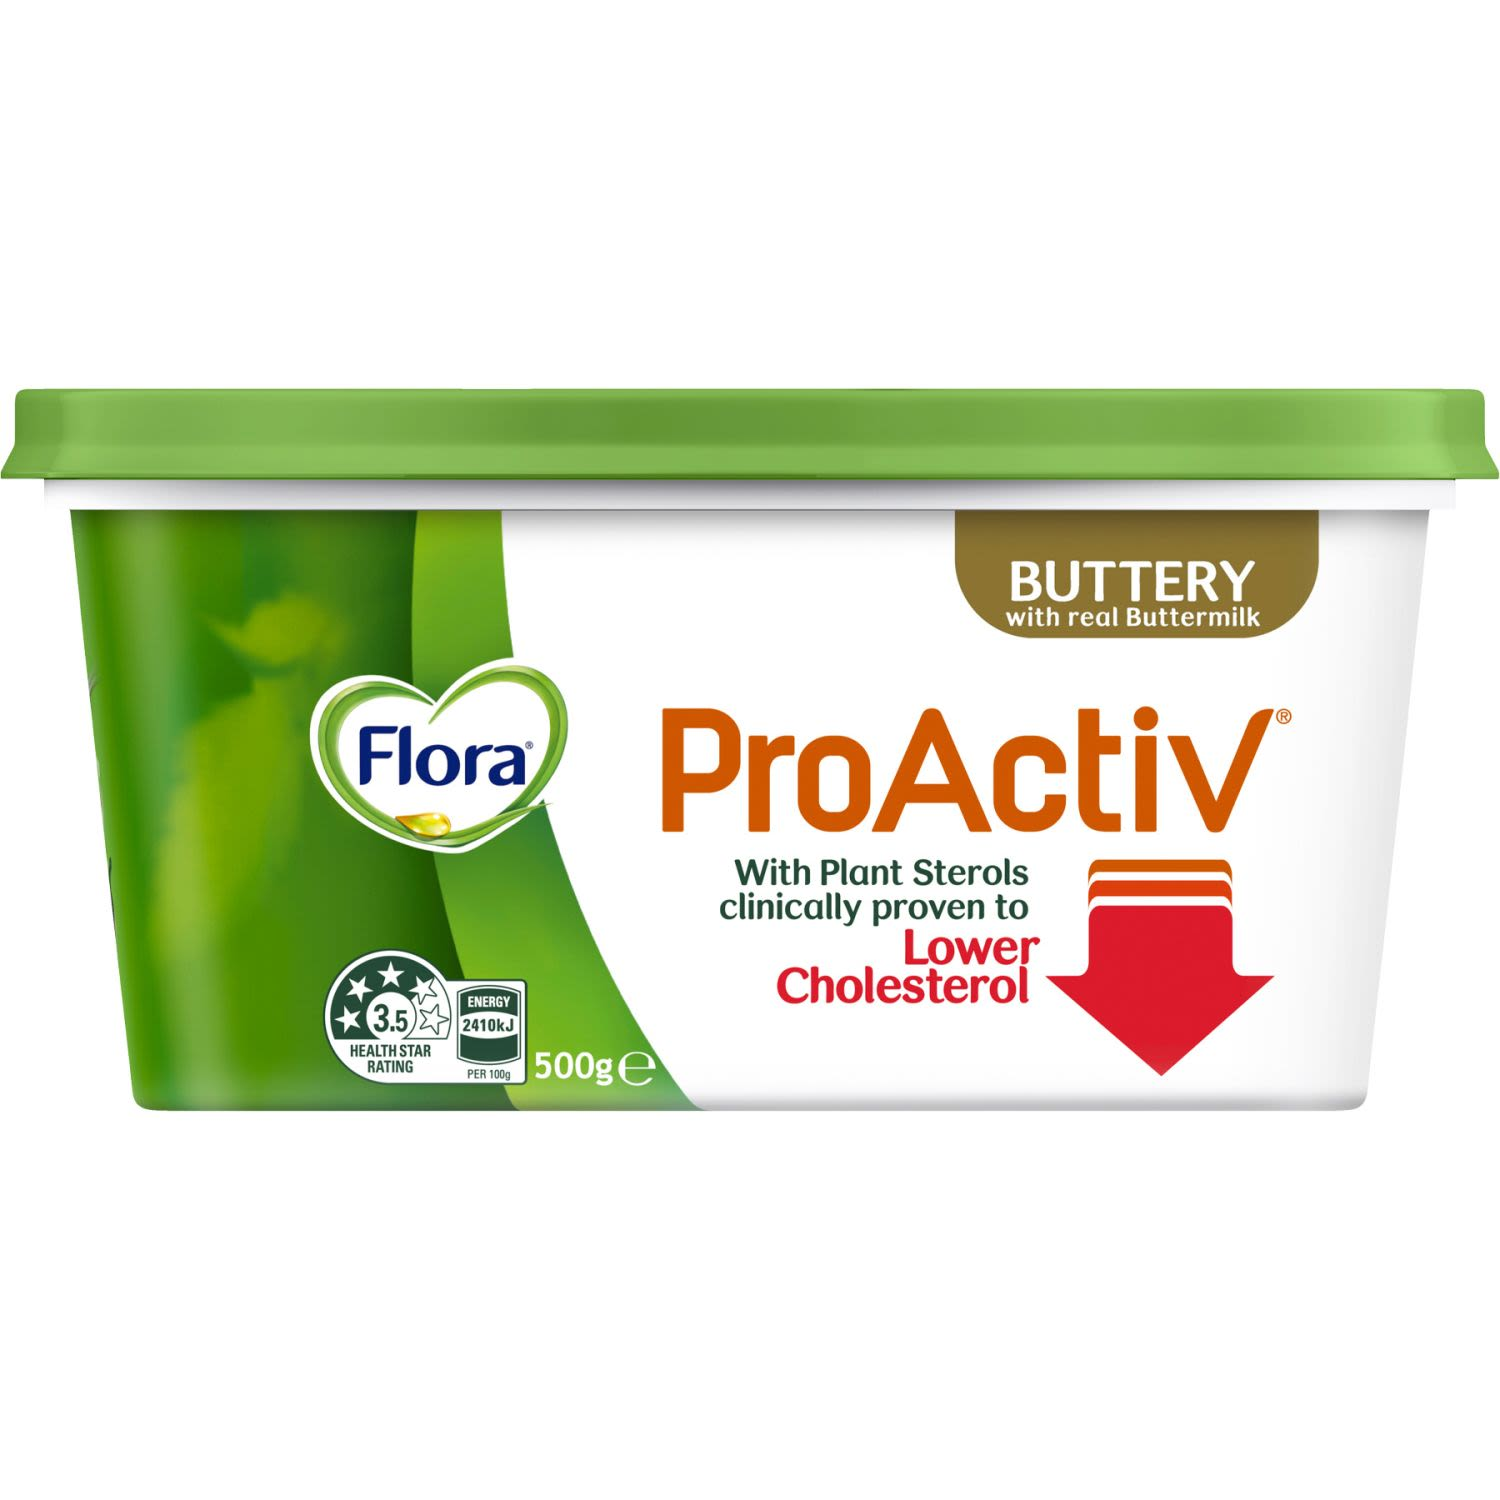 This contains 2g of plant sterols, the optimal amount per day proven to lower cholesterol. More than 3g of plant sterols per day do not provide additional benefits. If you are on cholesterol lowering medication please consult your doctor while using Flora ProActiv.